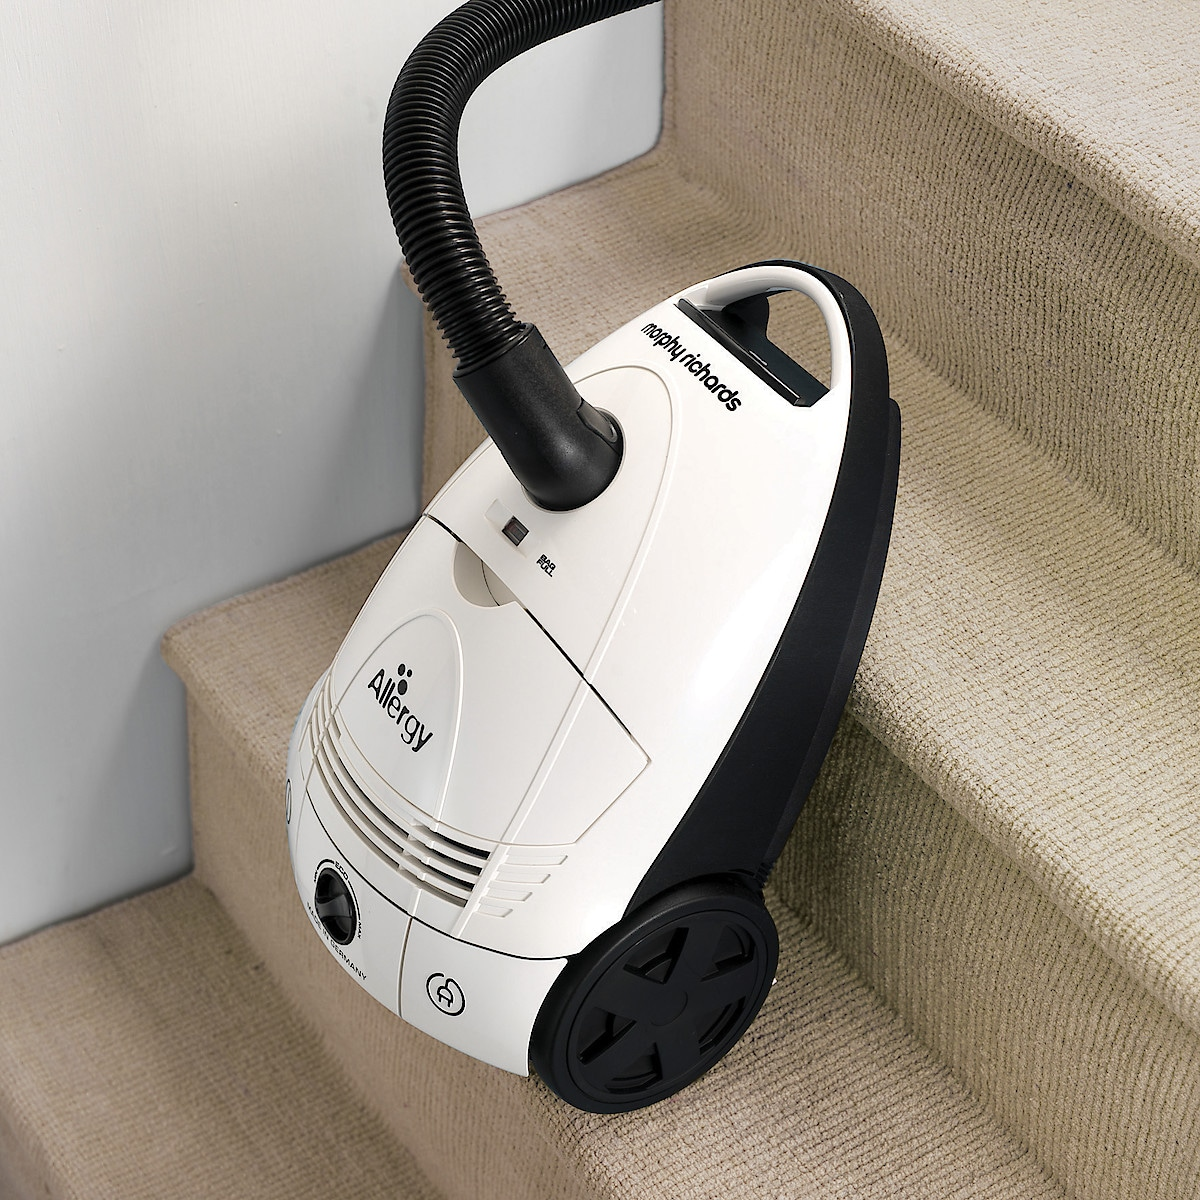 Morphy Richards Allergy Bagged Cylinder Vacuum Cleaner